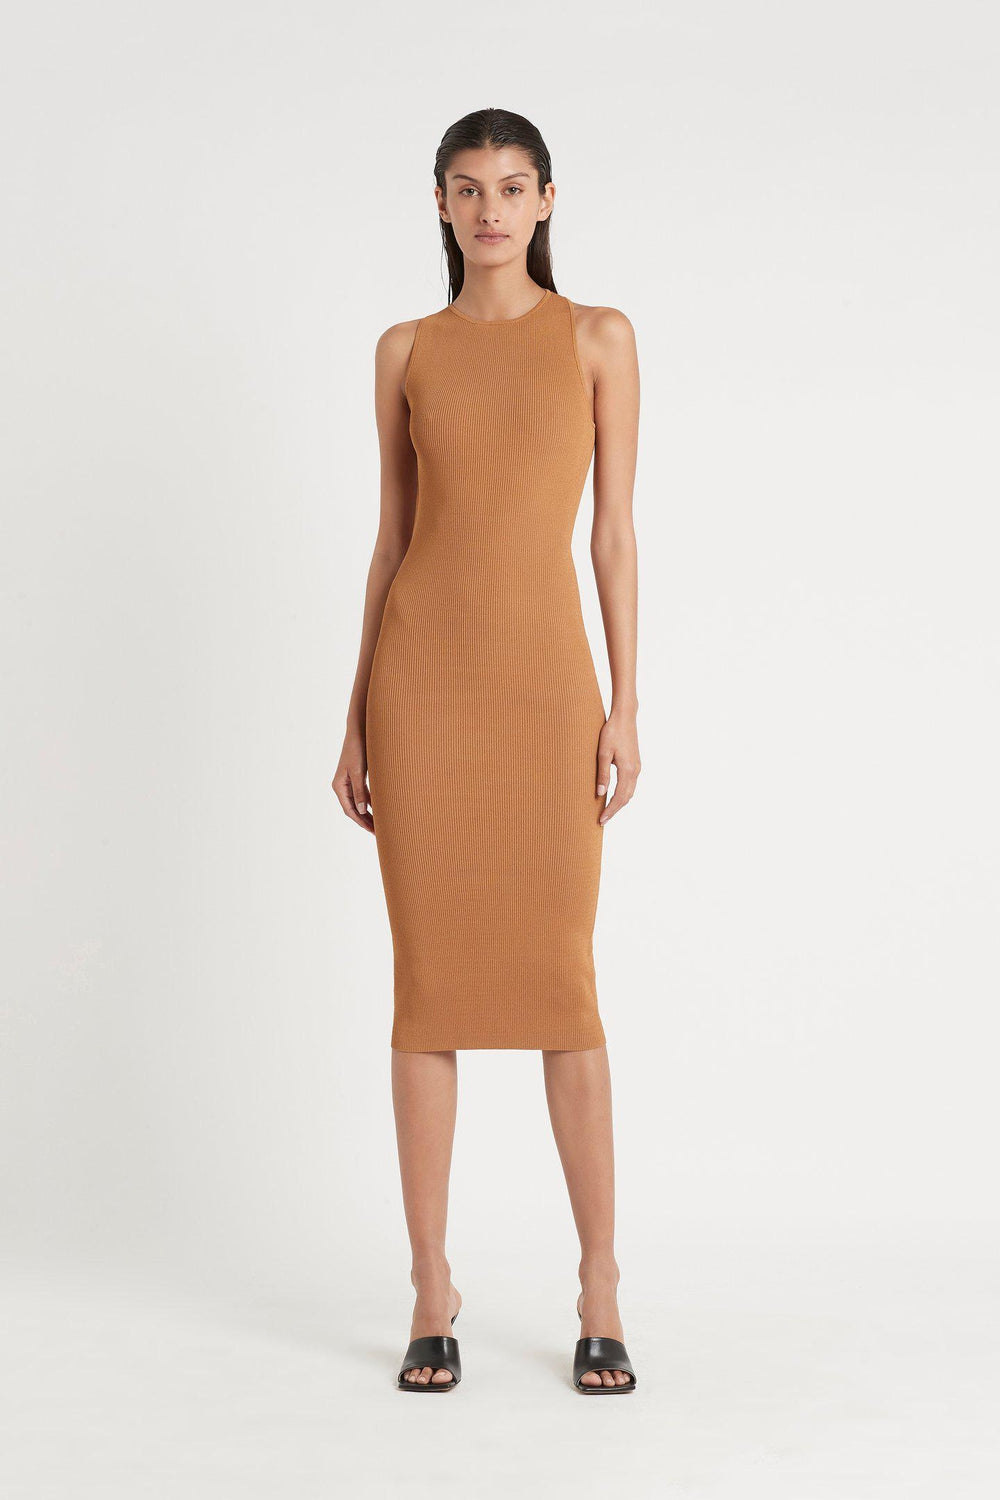 JASPER CUT OUT DRESS / CAMEL | SIR | Mad About The Boy